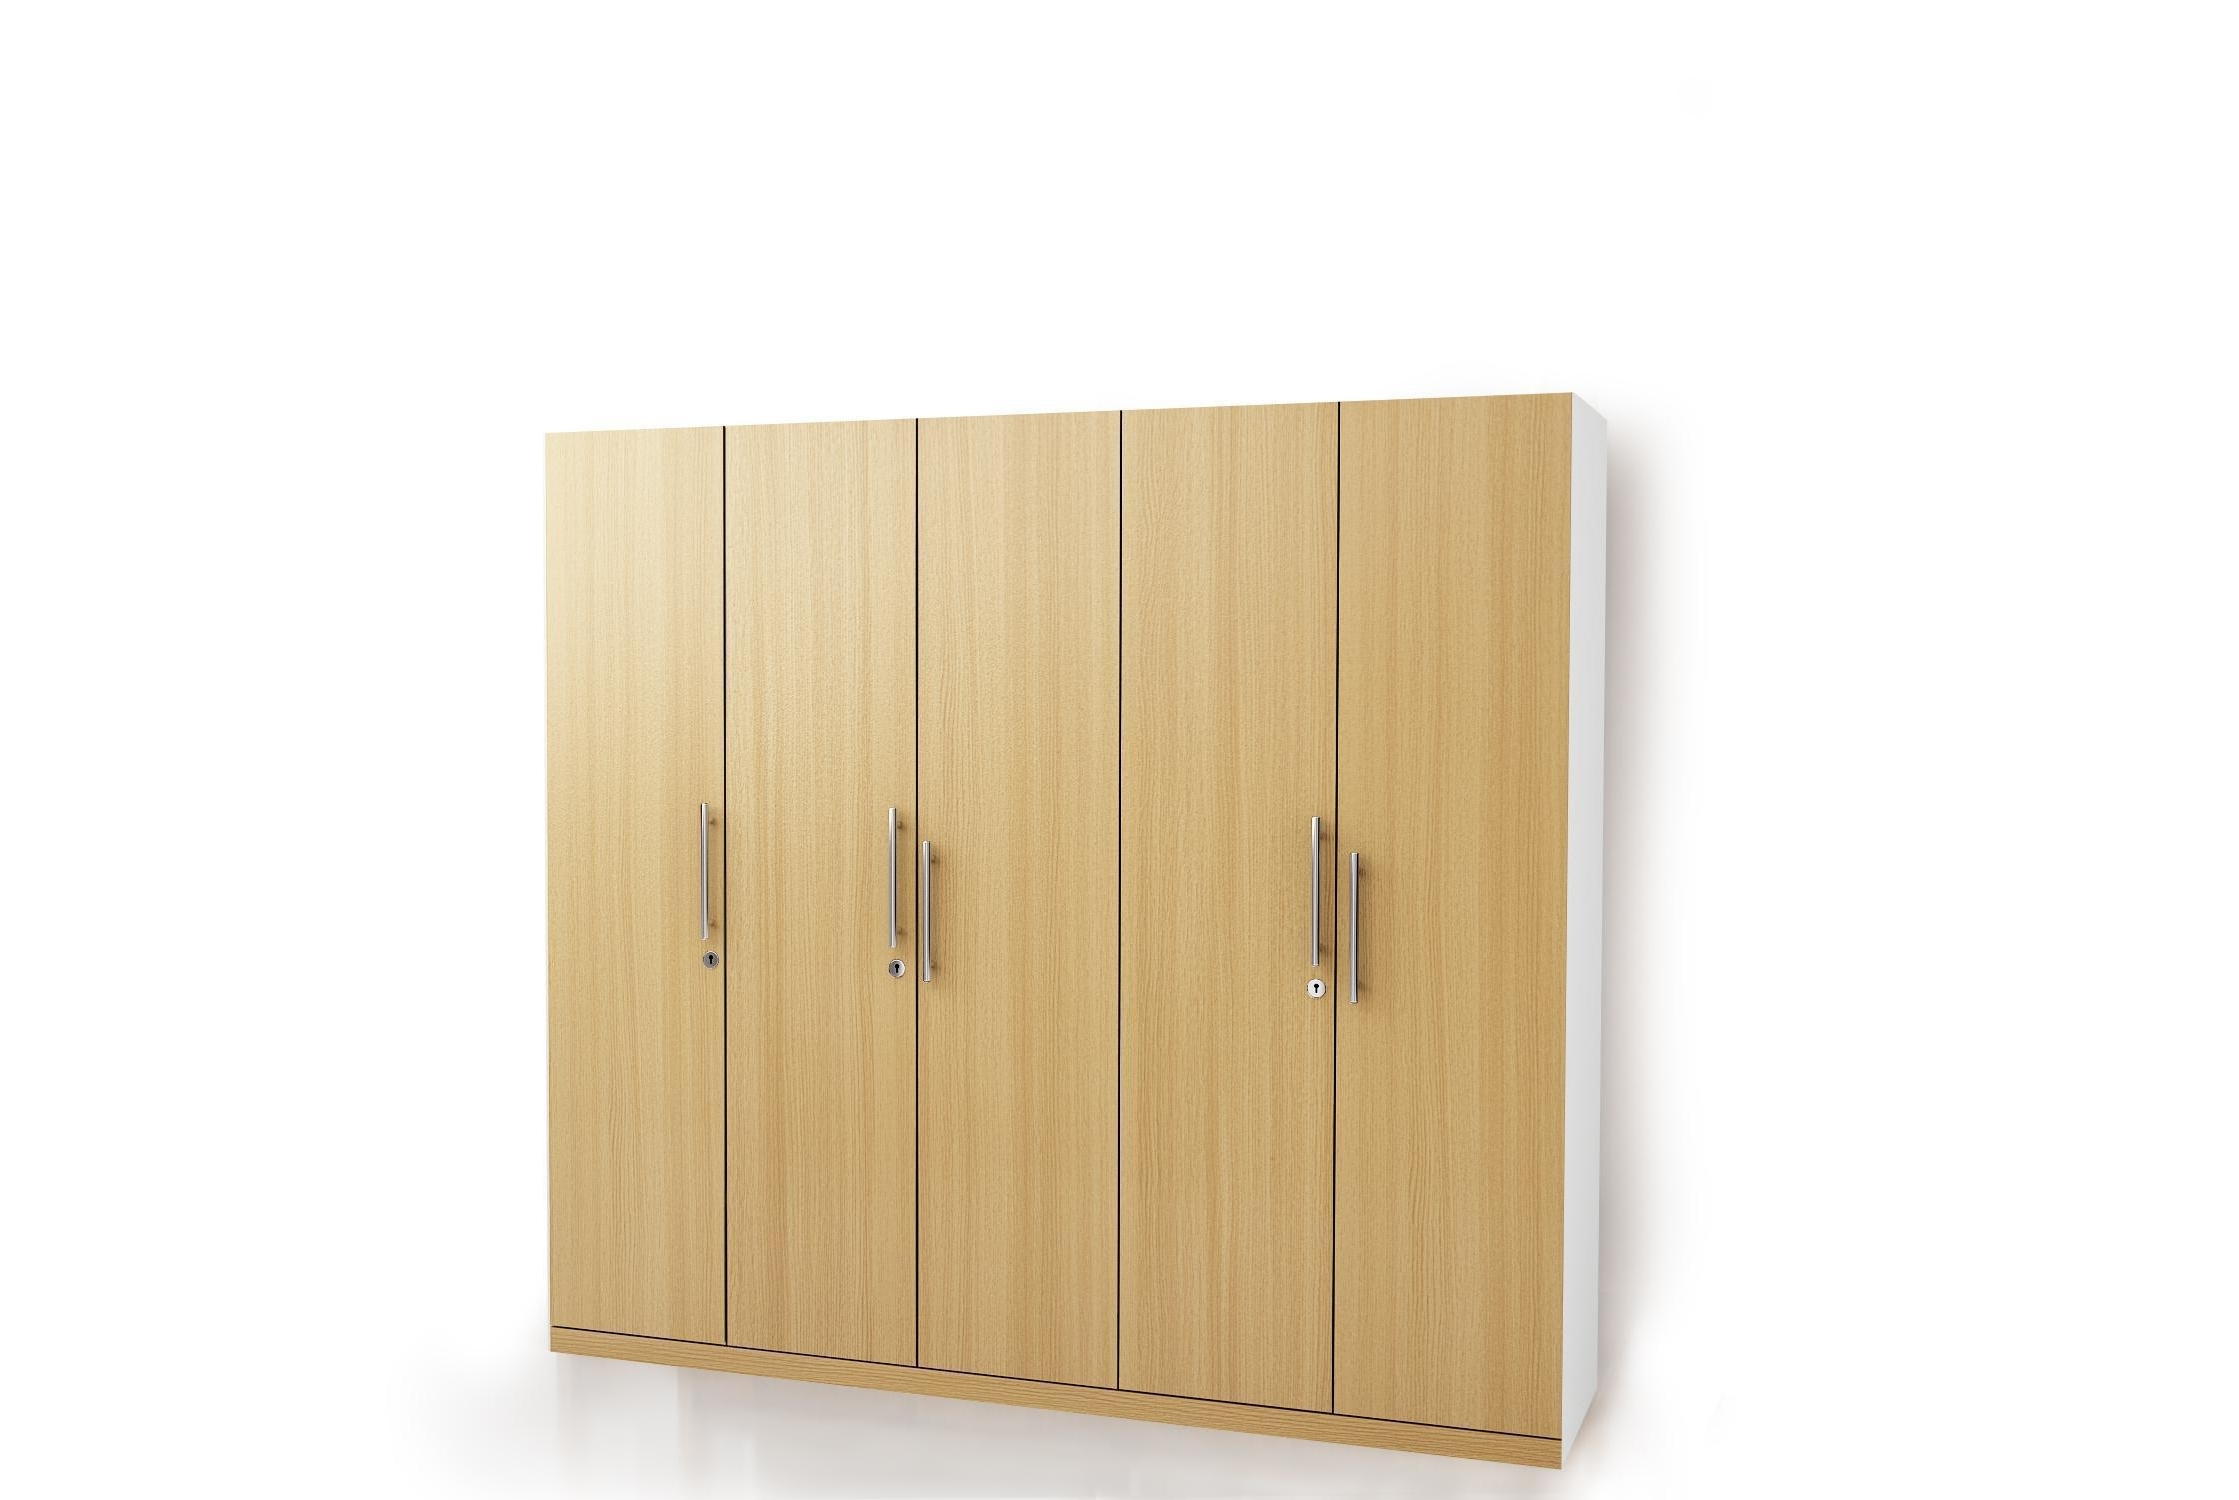 Trendy Low Height Wardrobes Childrens Profile Sliding Wardrobe Doors With Regard To Childrens Tallboy Wardrobes (View 15 of 15)